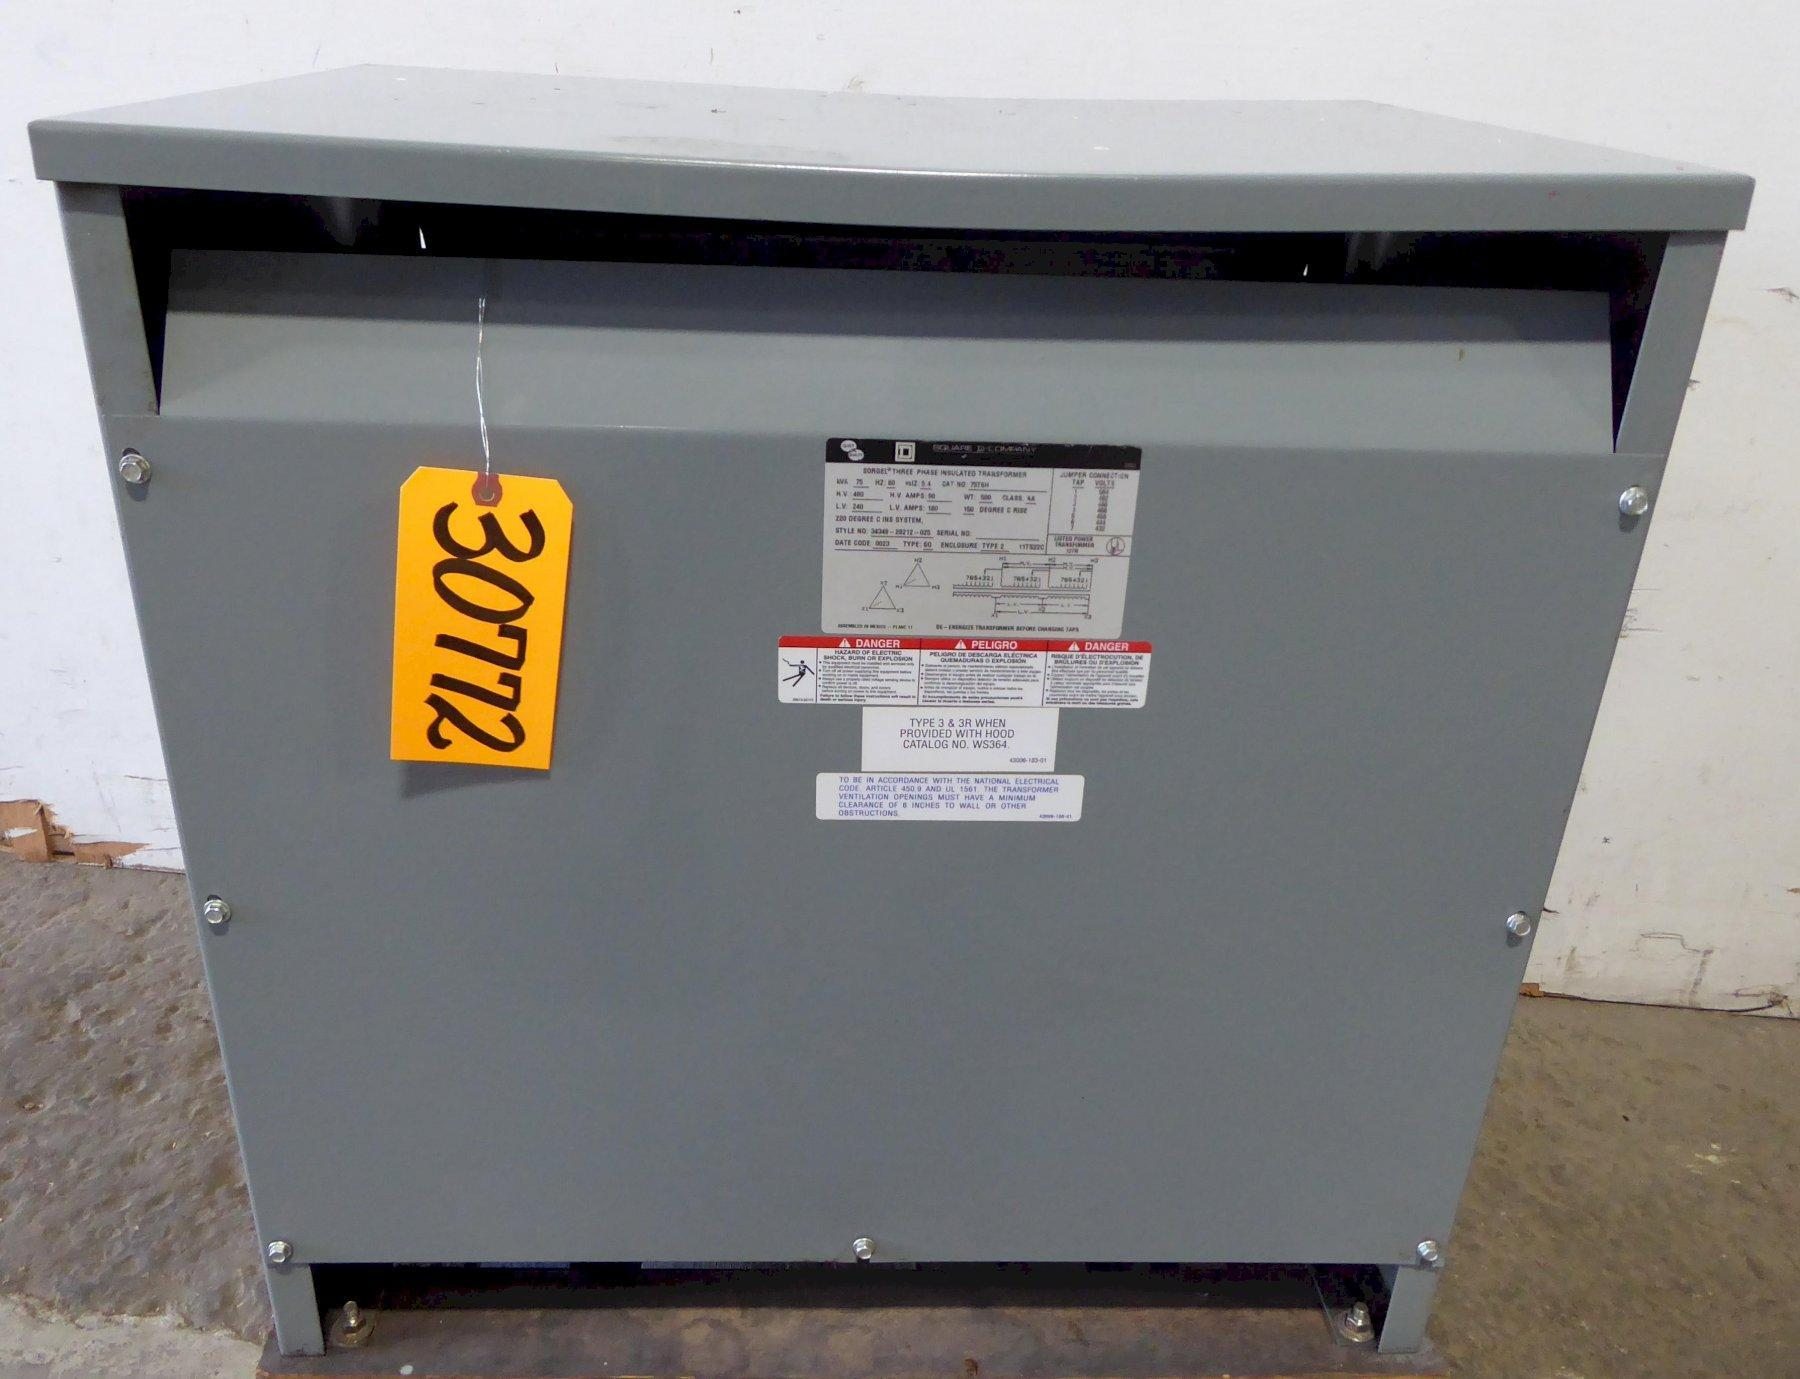 75 KVA Square D Transformer No. 75T6H, H.V: 480, L.V.: 240, 3 Phase